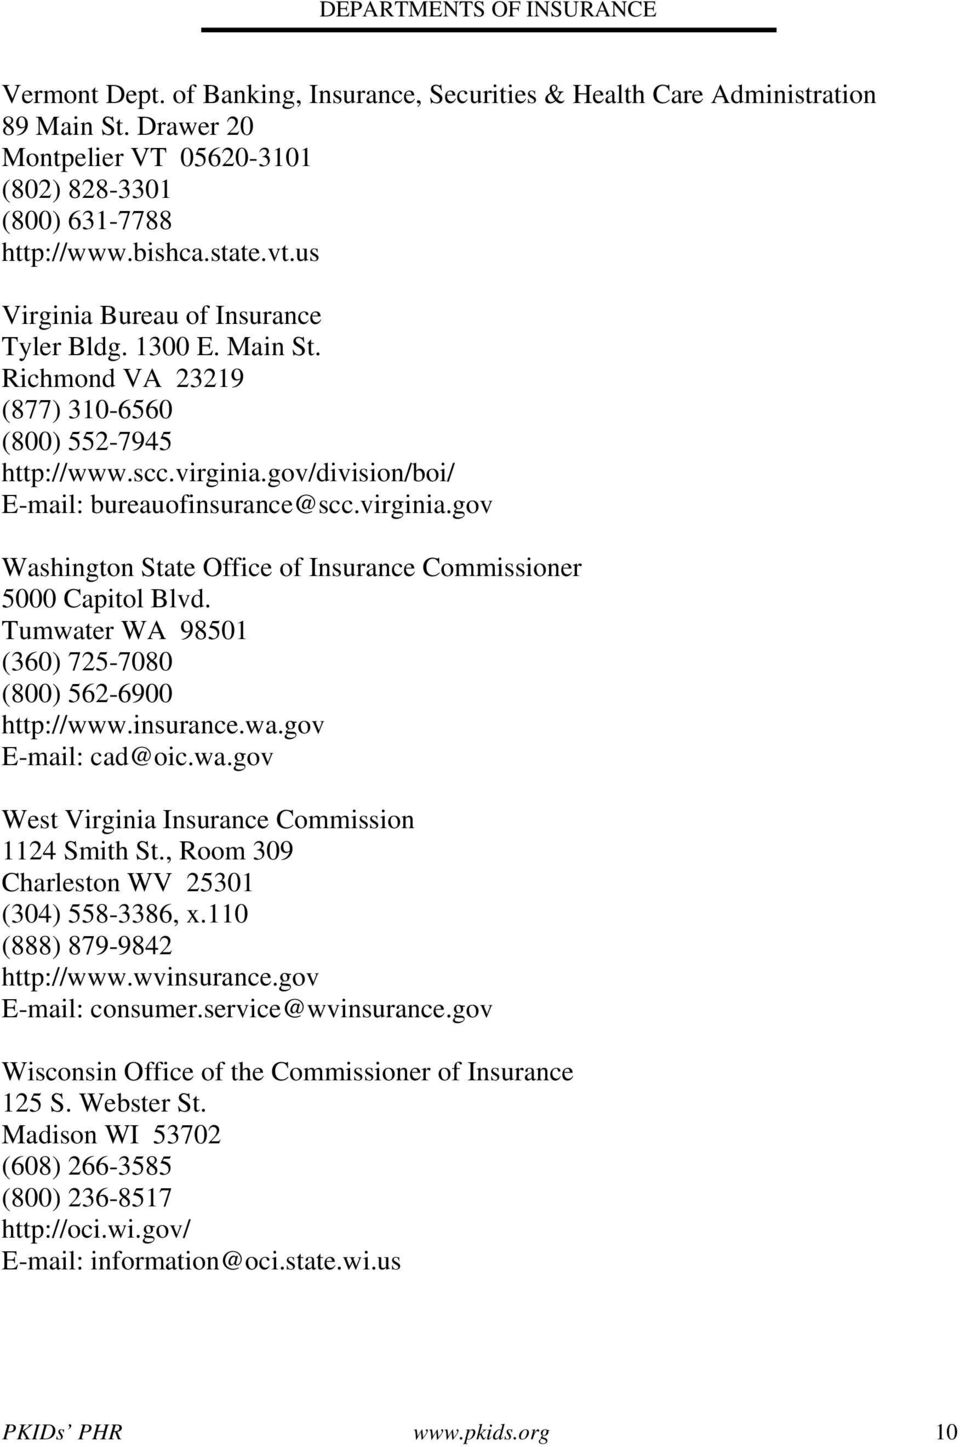 gov/division/boi/ E-mail: bureauofinsurance@scc.virginia.gov Washington State Office of Insurance Commissioner 5000 Capitol Blvd. Tumwater WA 98501 (360) 725-7080 (800) 562-6900 http://www.insurance.wa.gov E-mail: cad@oic.